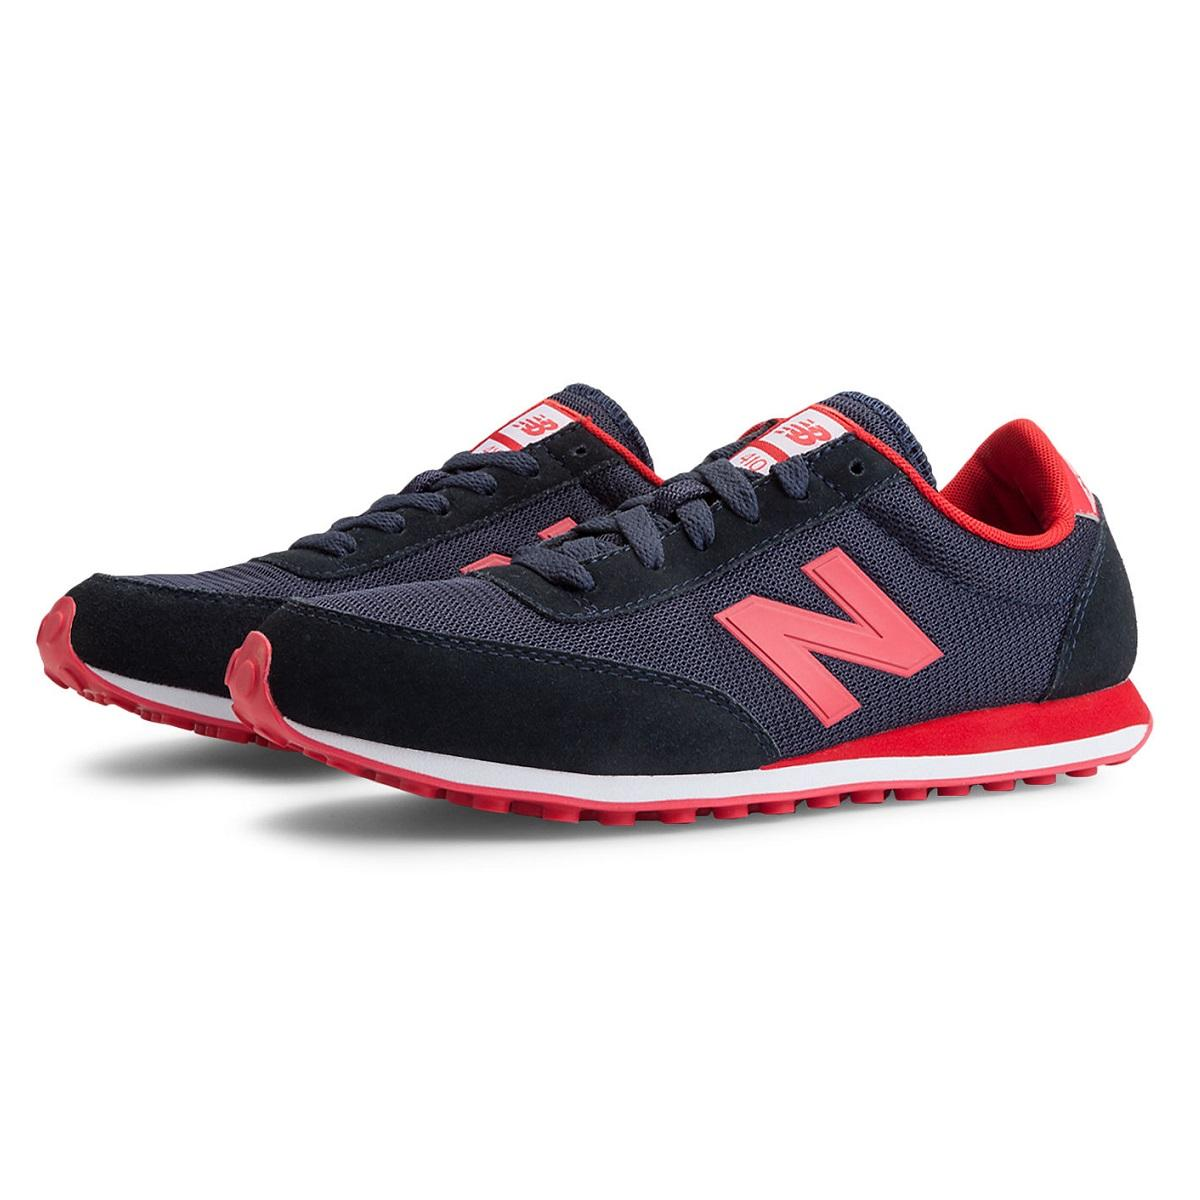 new balance ul 410 schuhe turnschuhe sneaker damen lila rot grau ebay. Black Bedroom Furniture Sets. Home Design Ideas